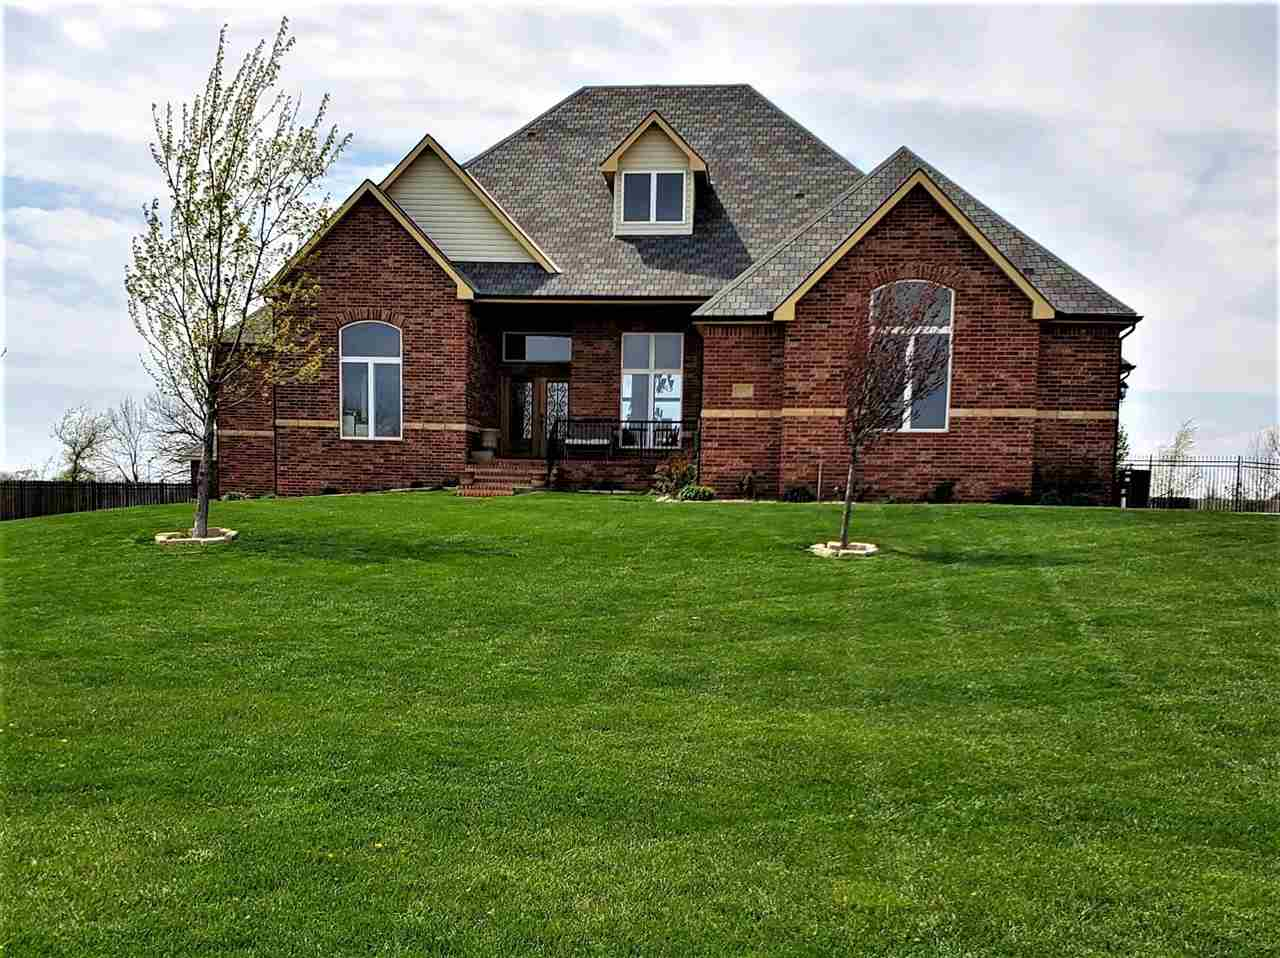 Come see your new home located on a quiet cul-de-sac on a 1-acre lot with in-ground pool! The main f